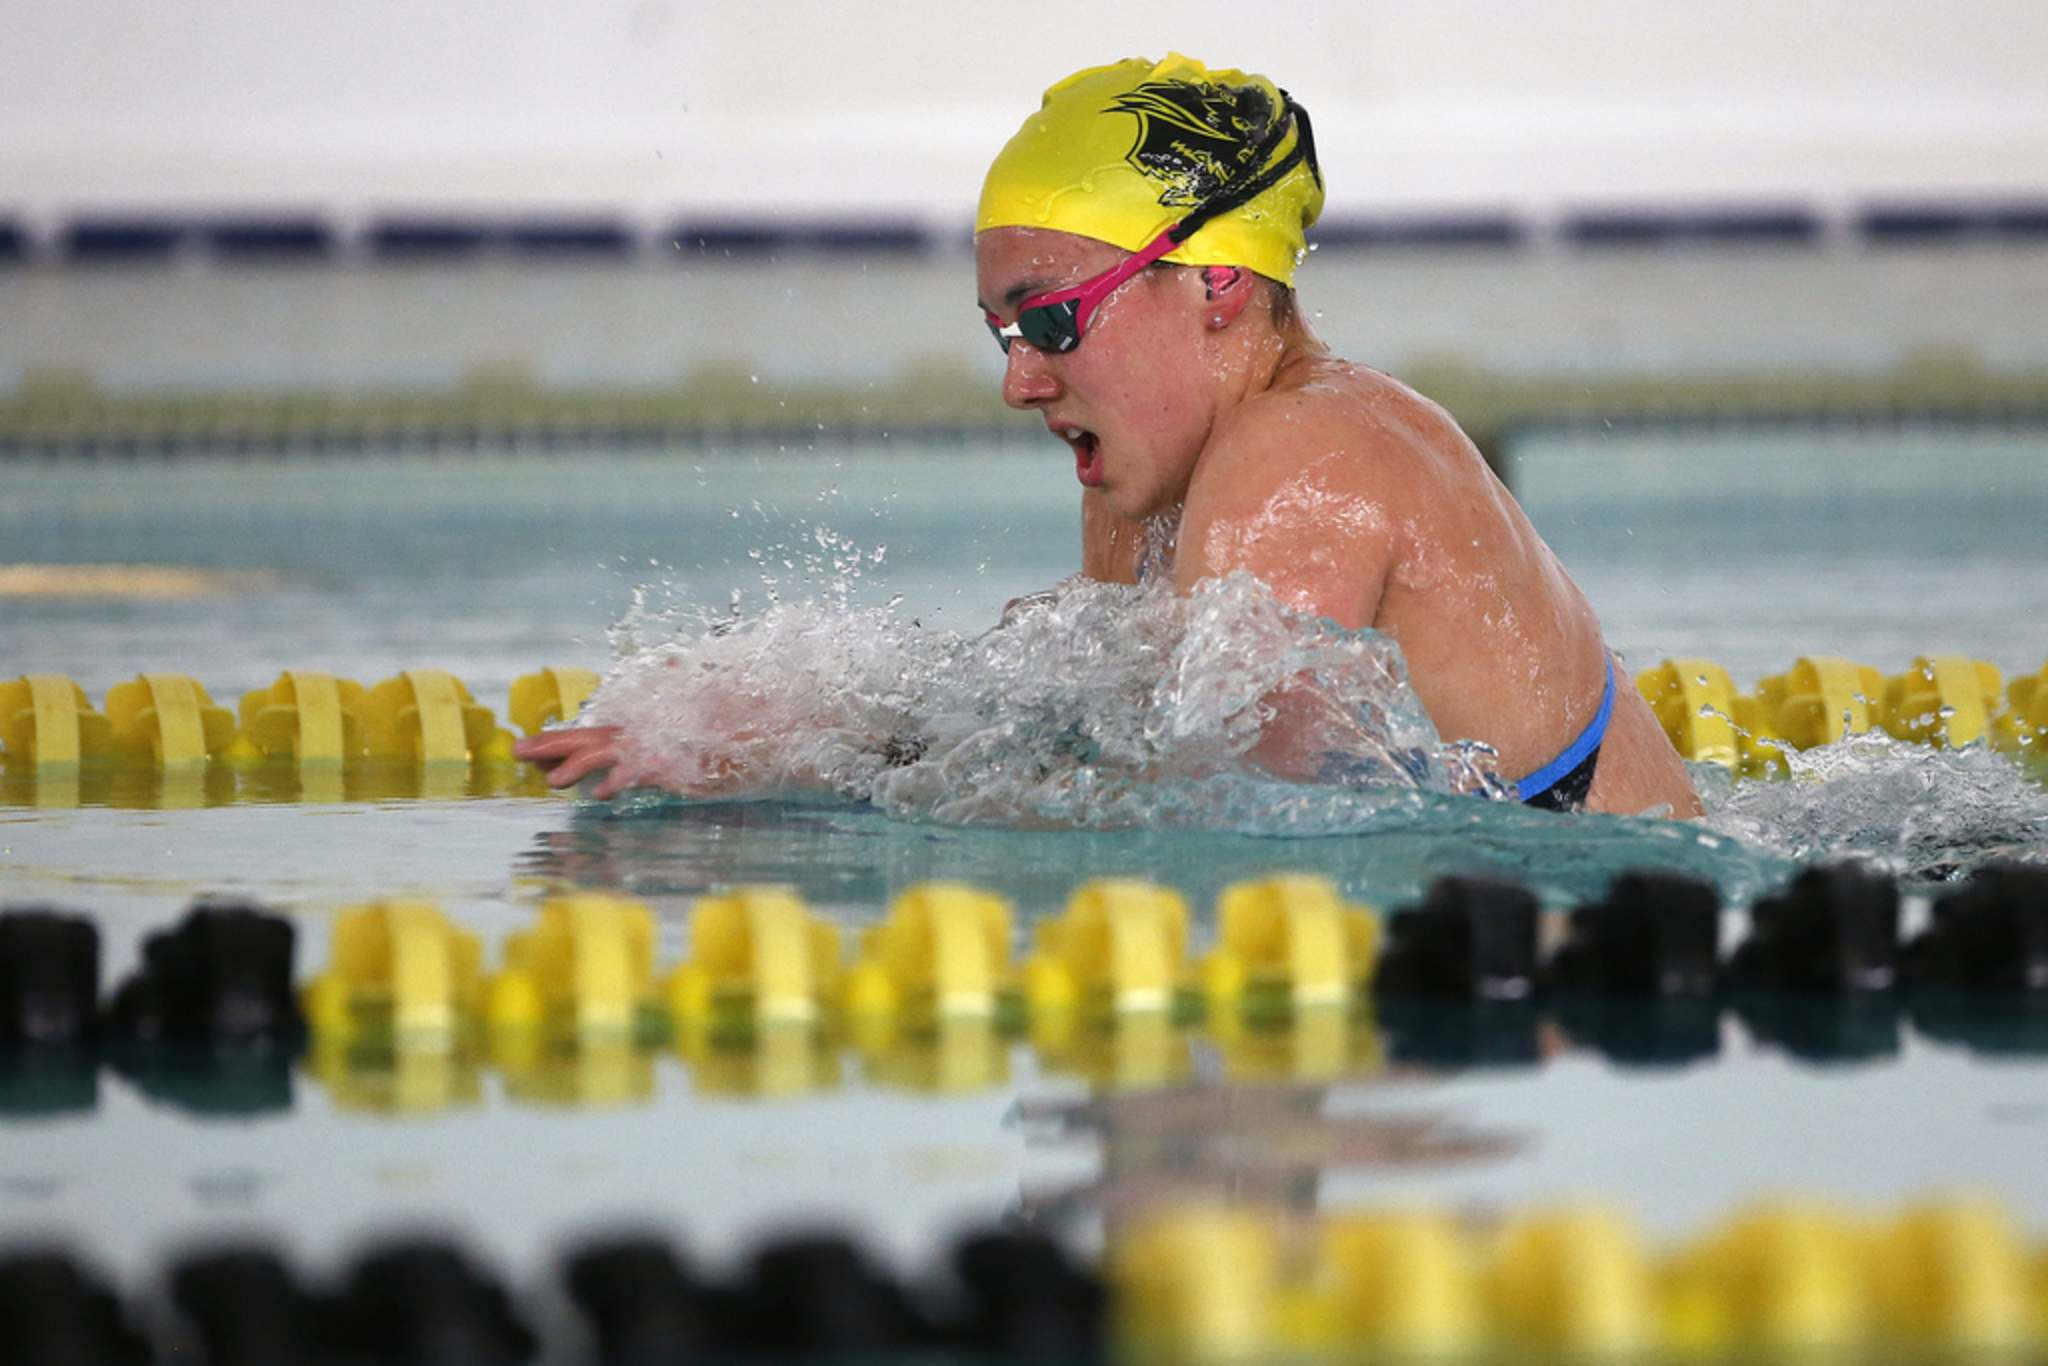 Kelsey Wog got her start racing in the pool as an eight-year-old.